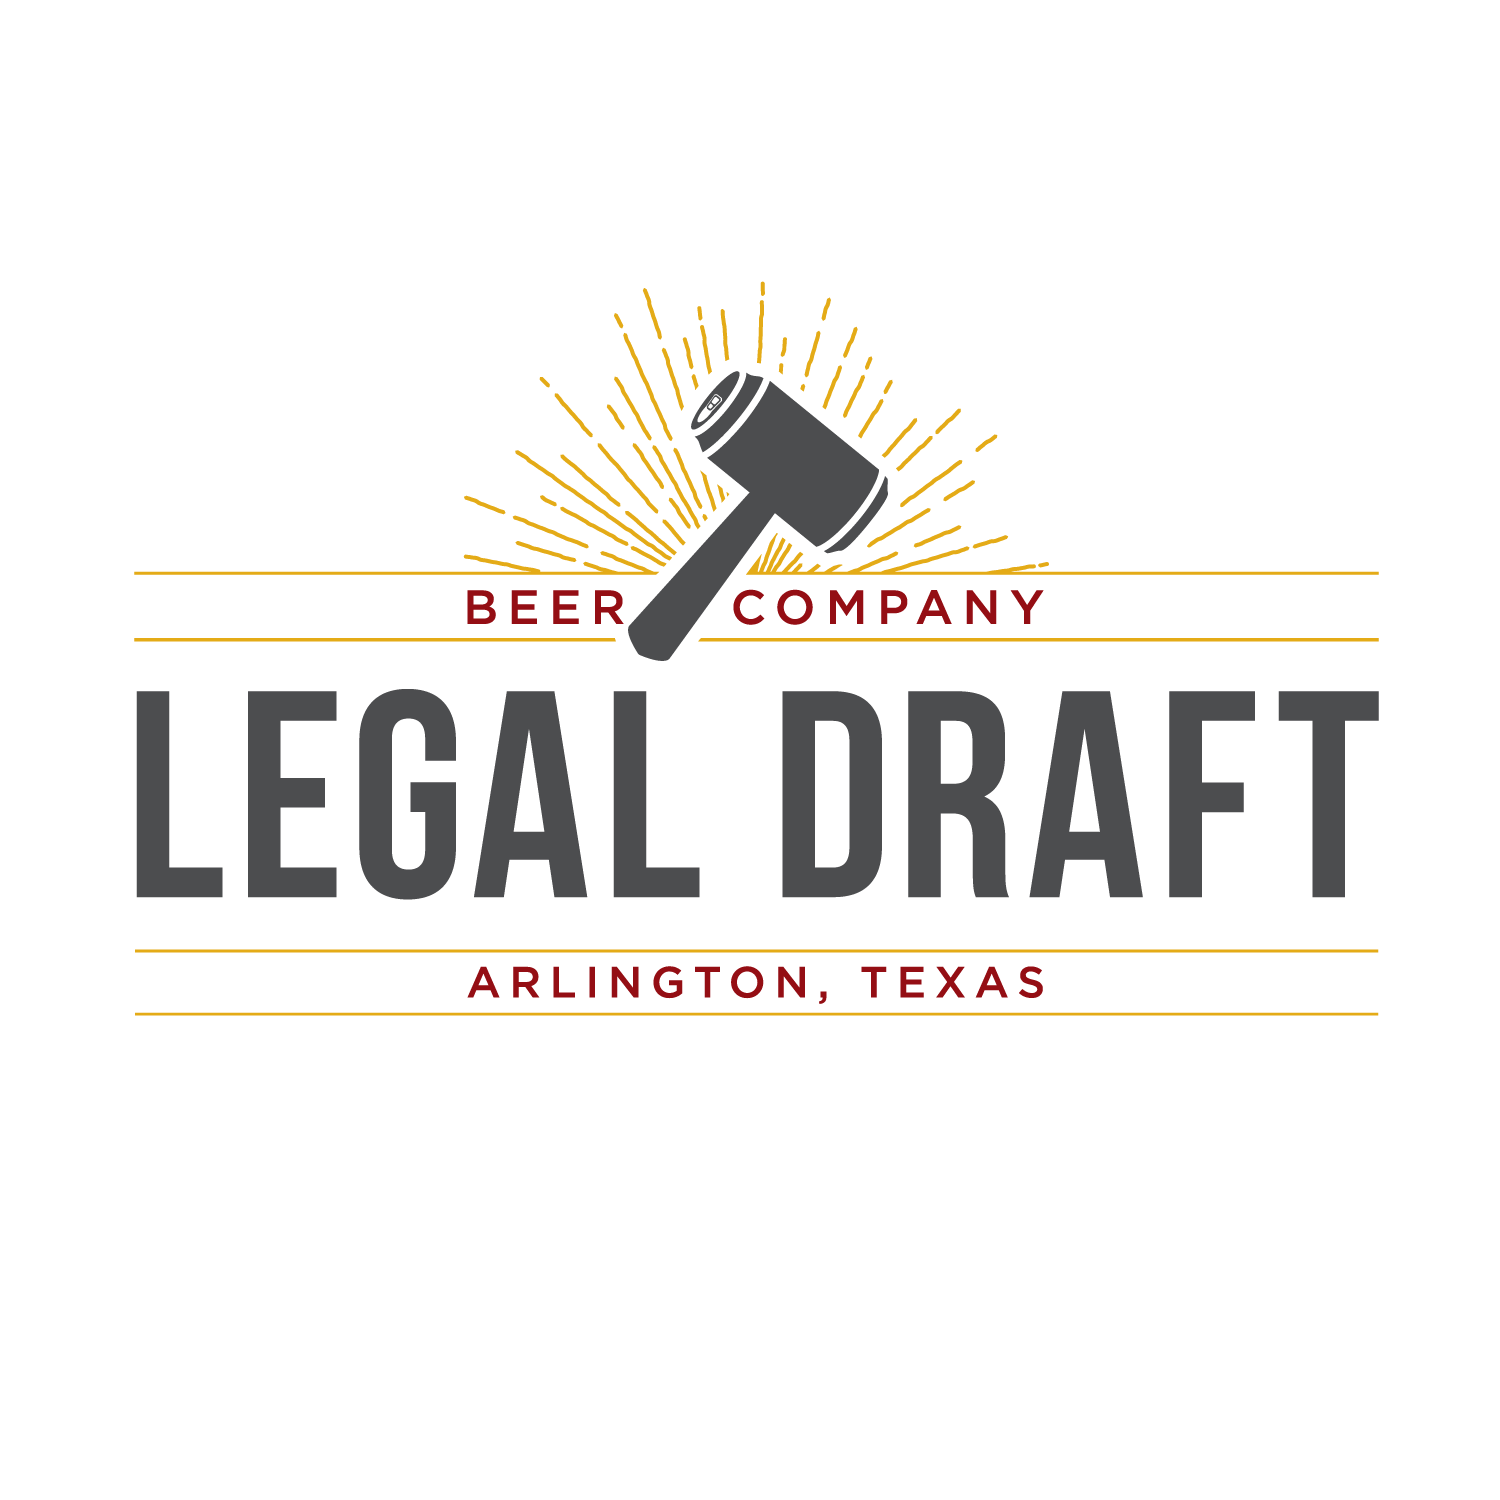 Legal Draft Beer